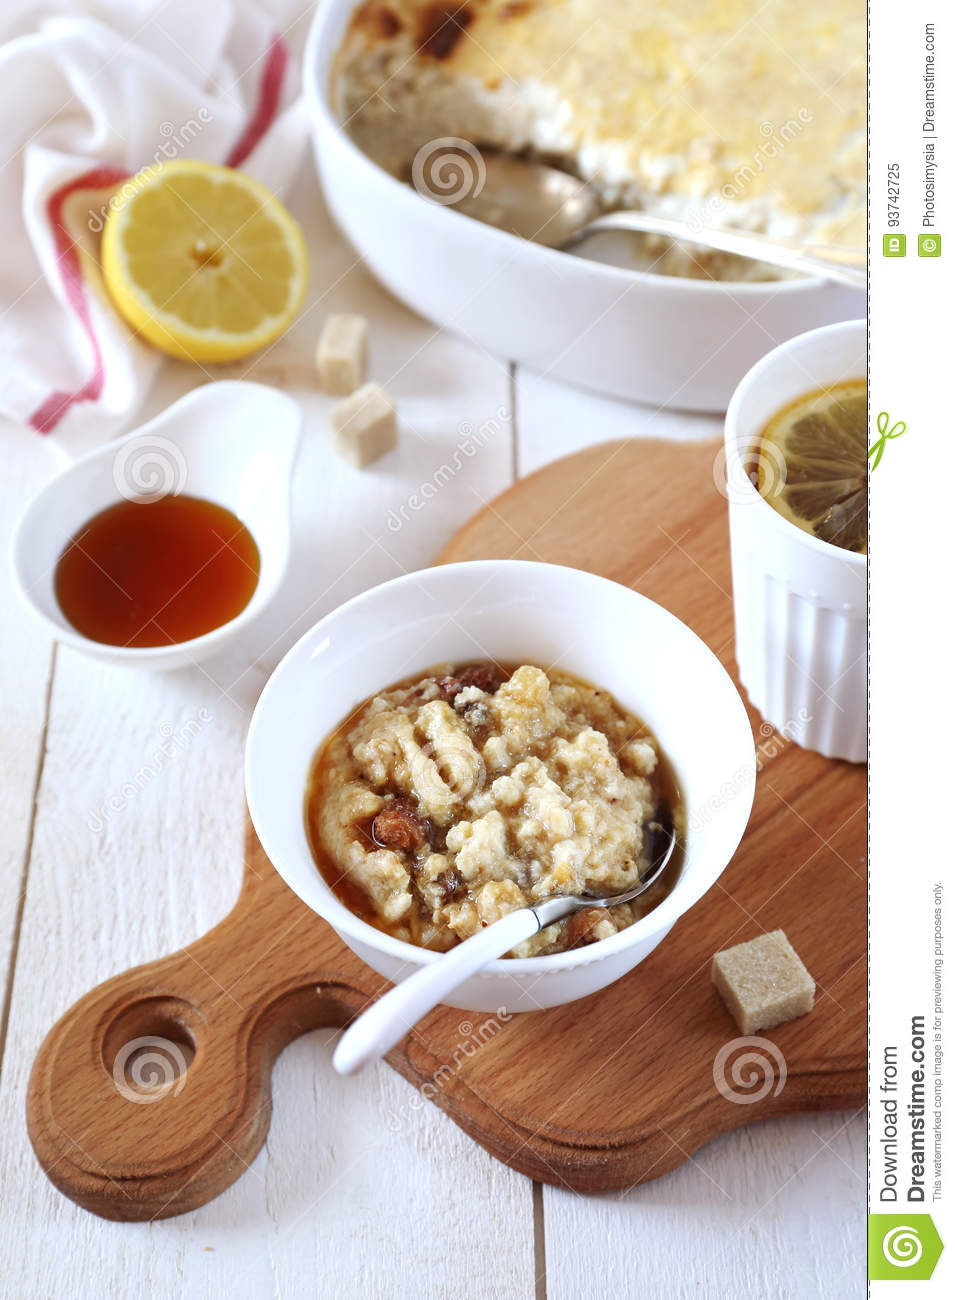 Oatmeal pudding with raisins and cinnamon, maple syrup dressing